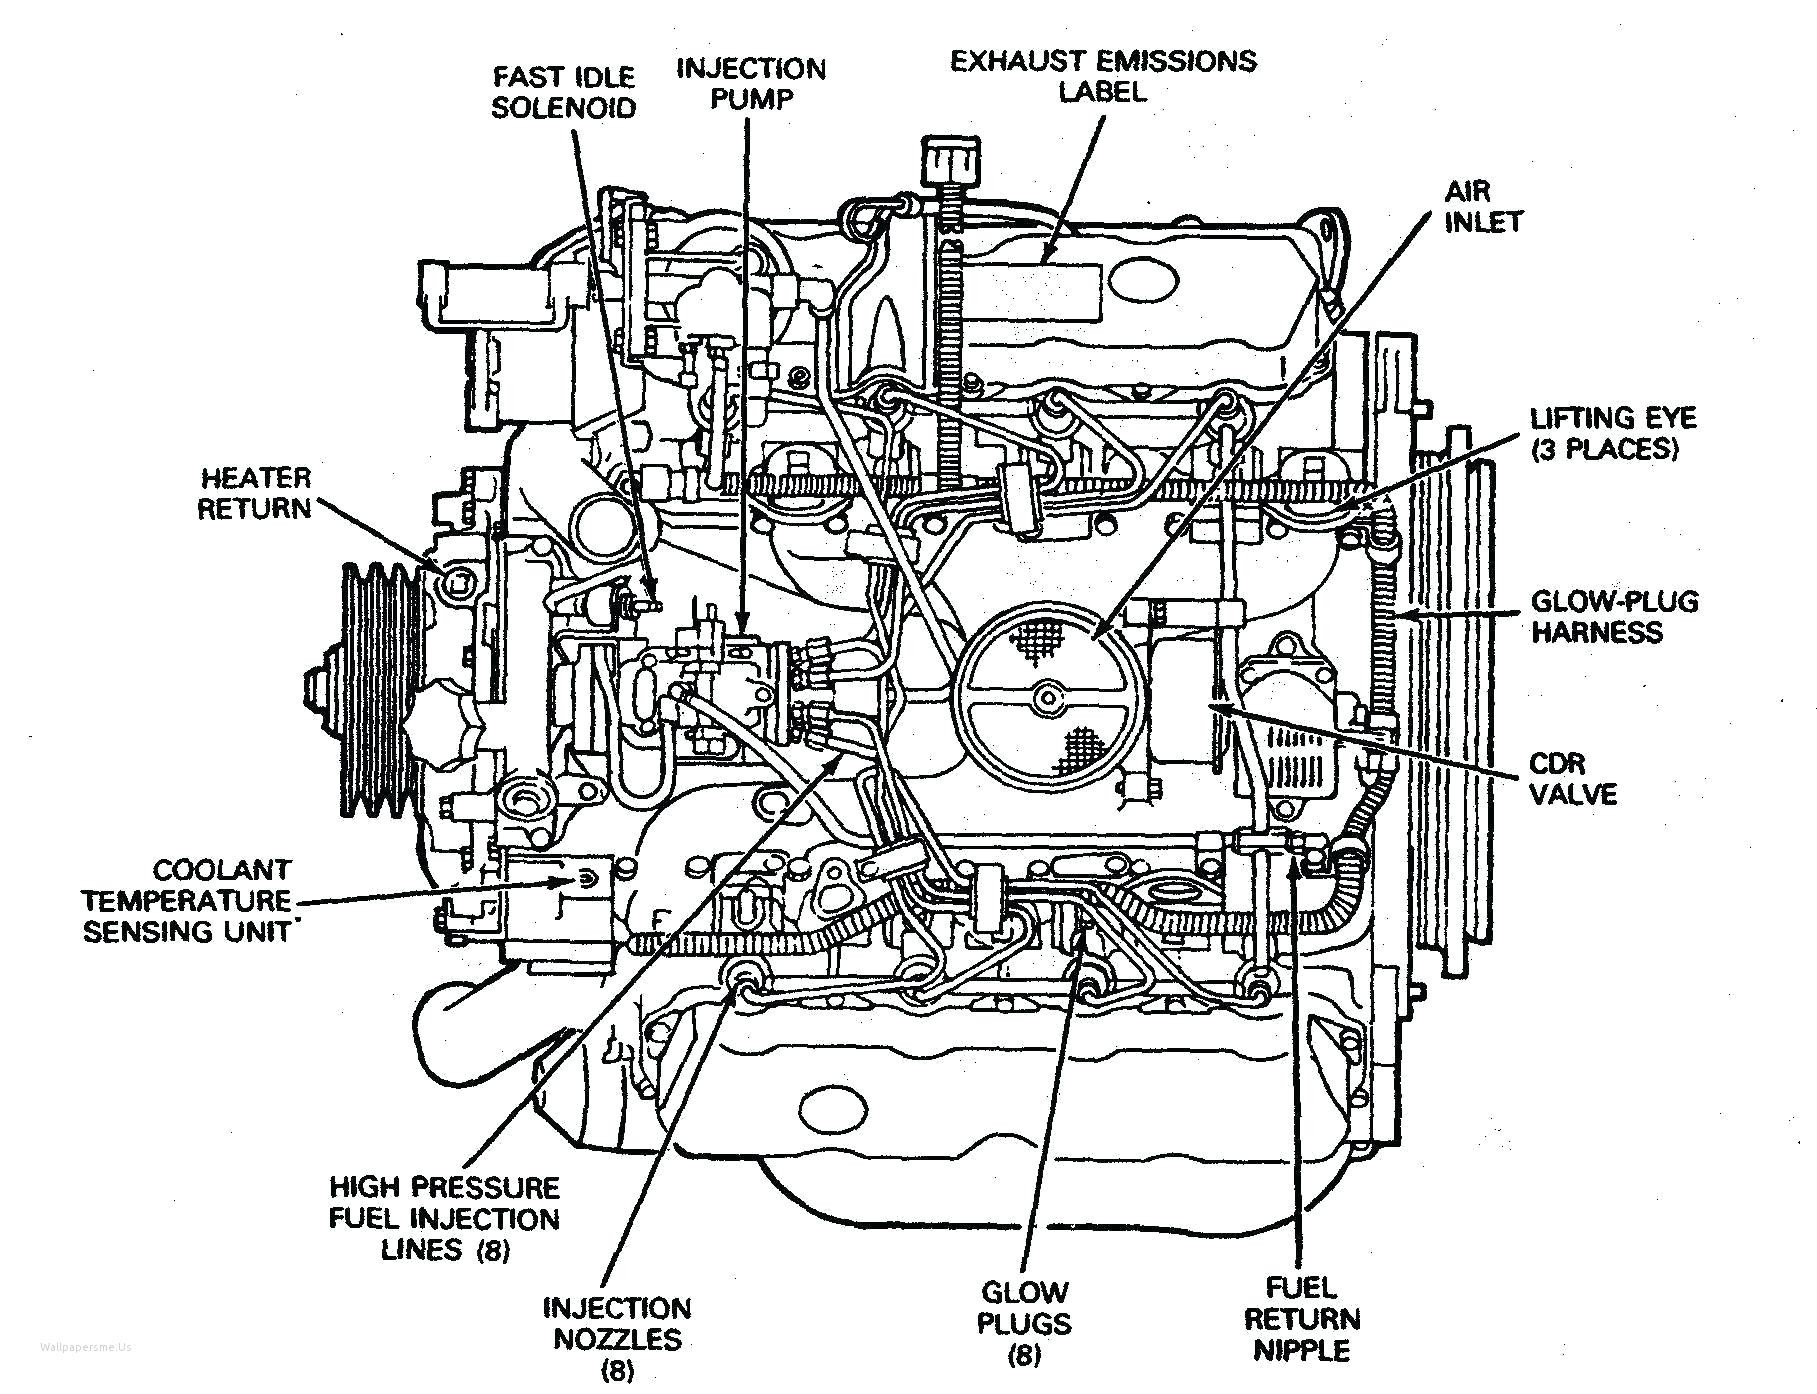 Car Engine Diagram with Labeled Awesome Engine Diagrams Line Contemporary Everything You Need to Of Car Engine Diagram with Labeled